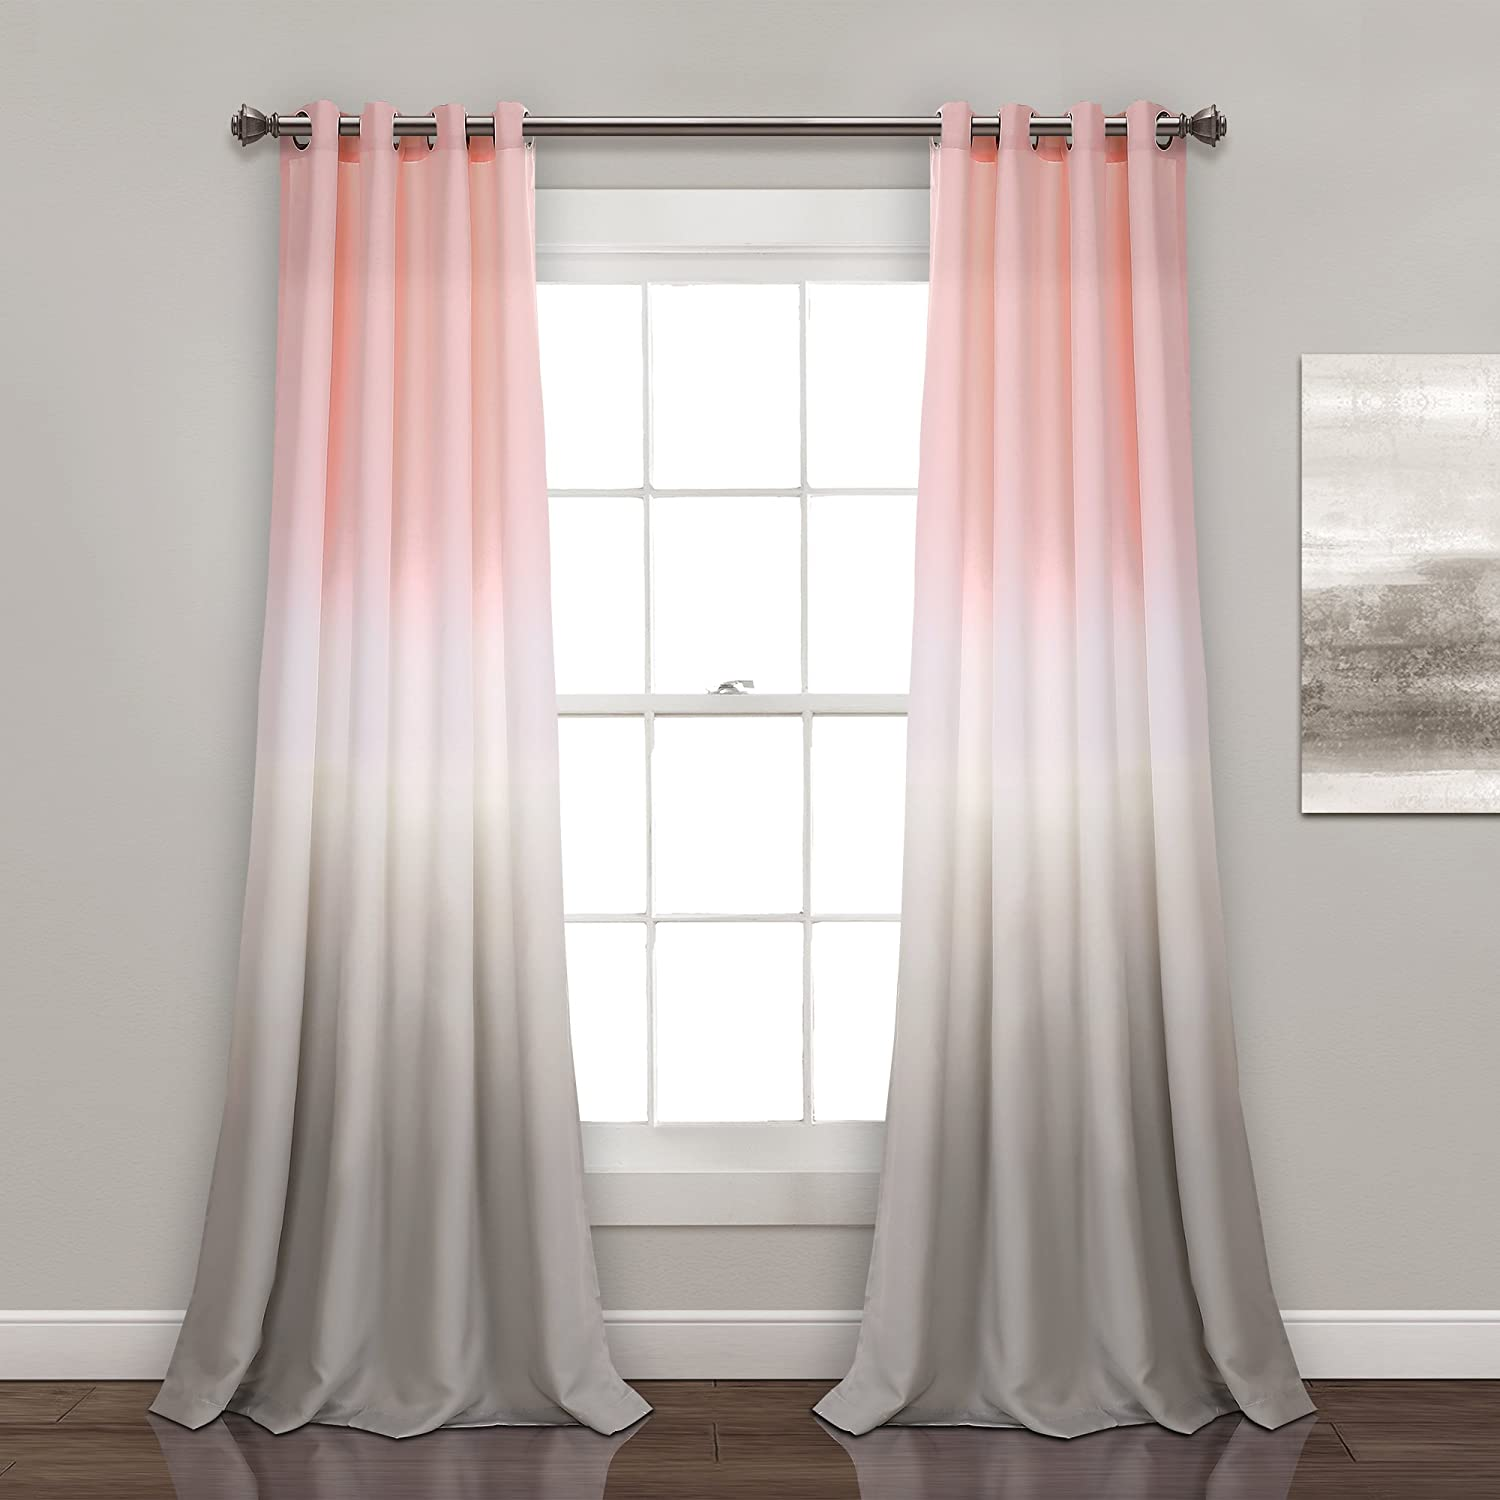 "Lush Decor Umber Fiesta Curtains Room Darkening Window Panel Set for Living, Dining, Bedroom (Pair) 84"" x 52"" Blush and Gray"